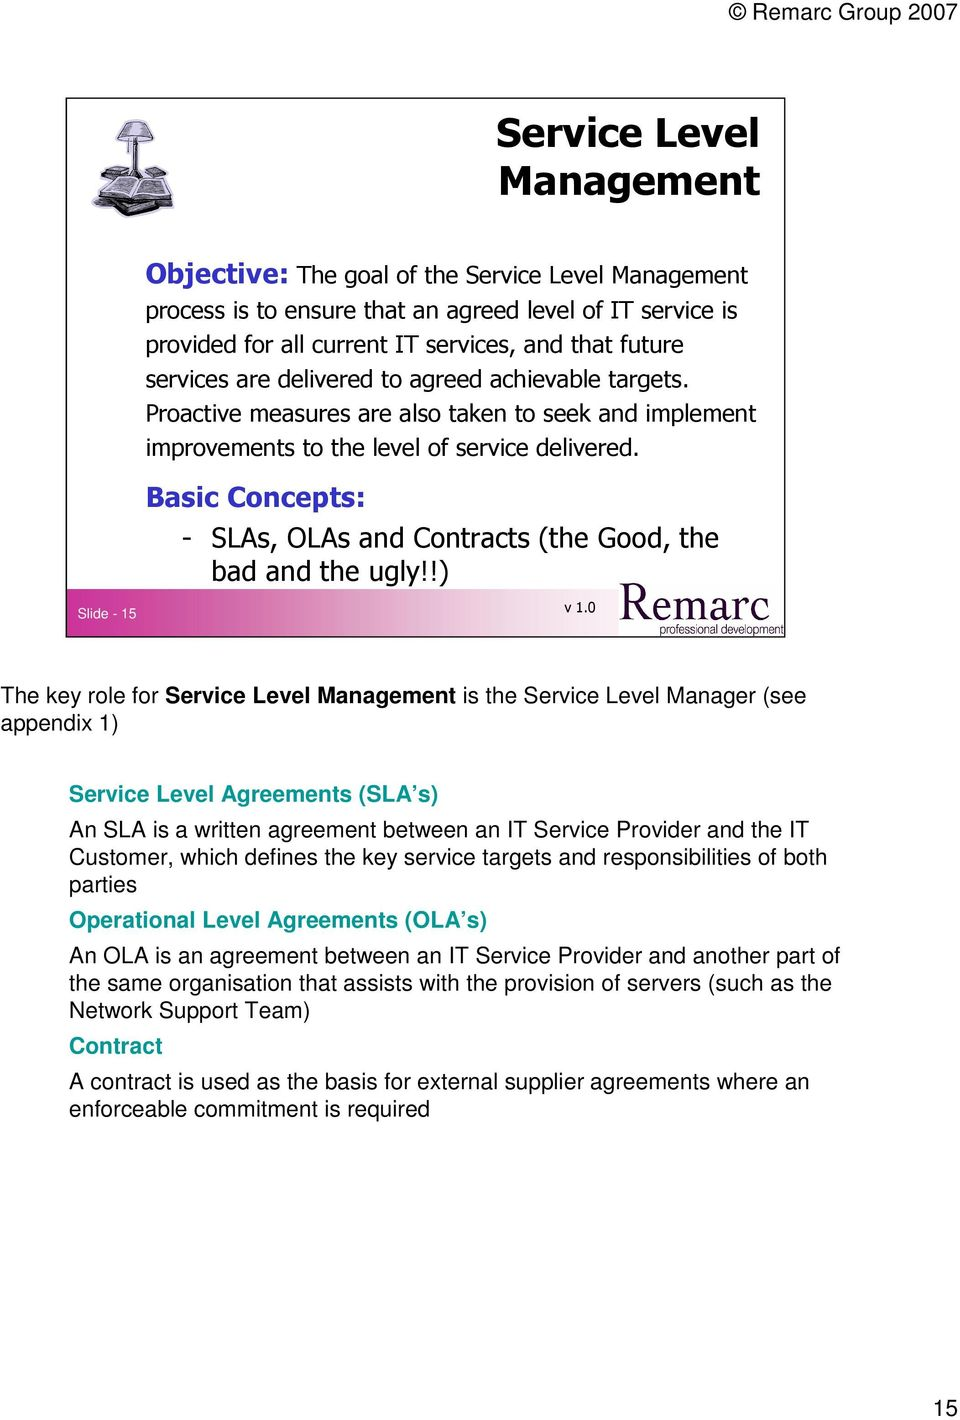 Basic Concepts: - SLAs, OLAs and Contracts (the Good, the bad and the ugly!